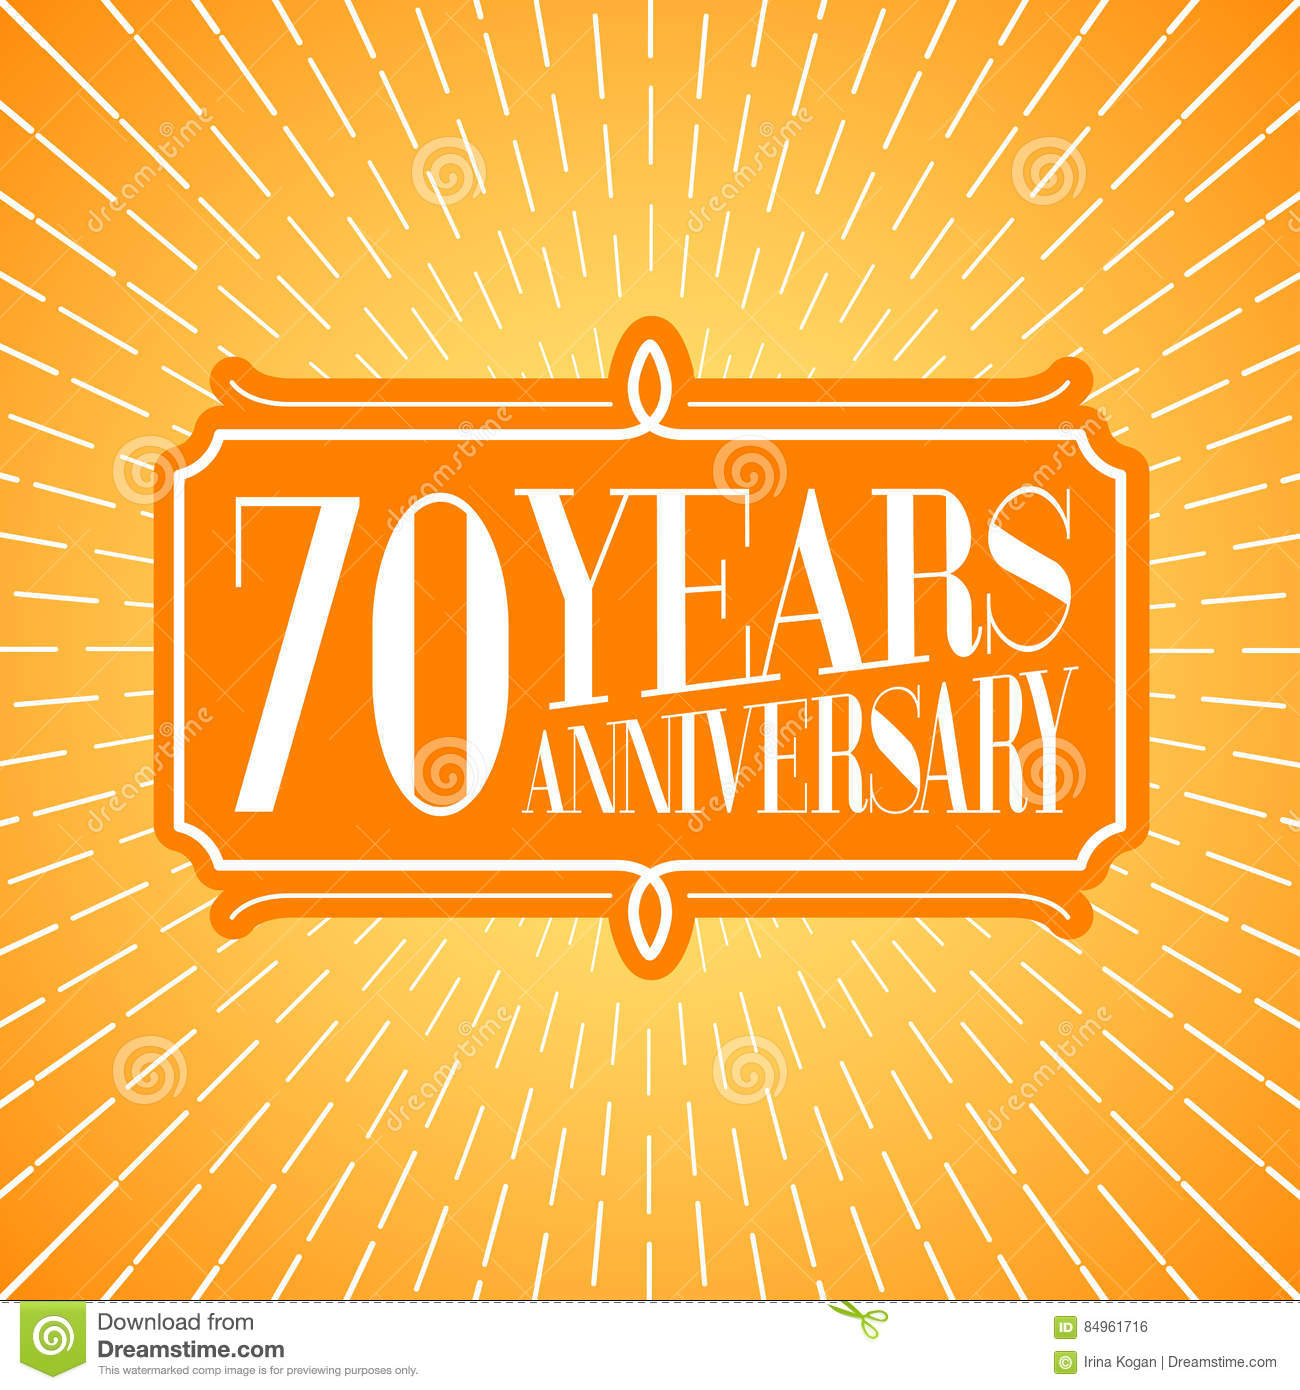 70 Years Anniversary Vector Icon Logo Graphic Design Element For 70th Birthday Greeting Card